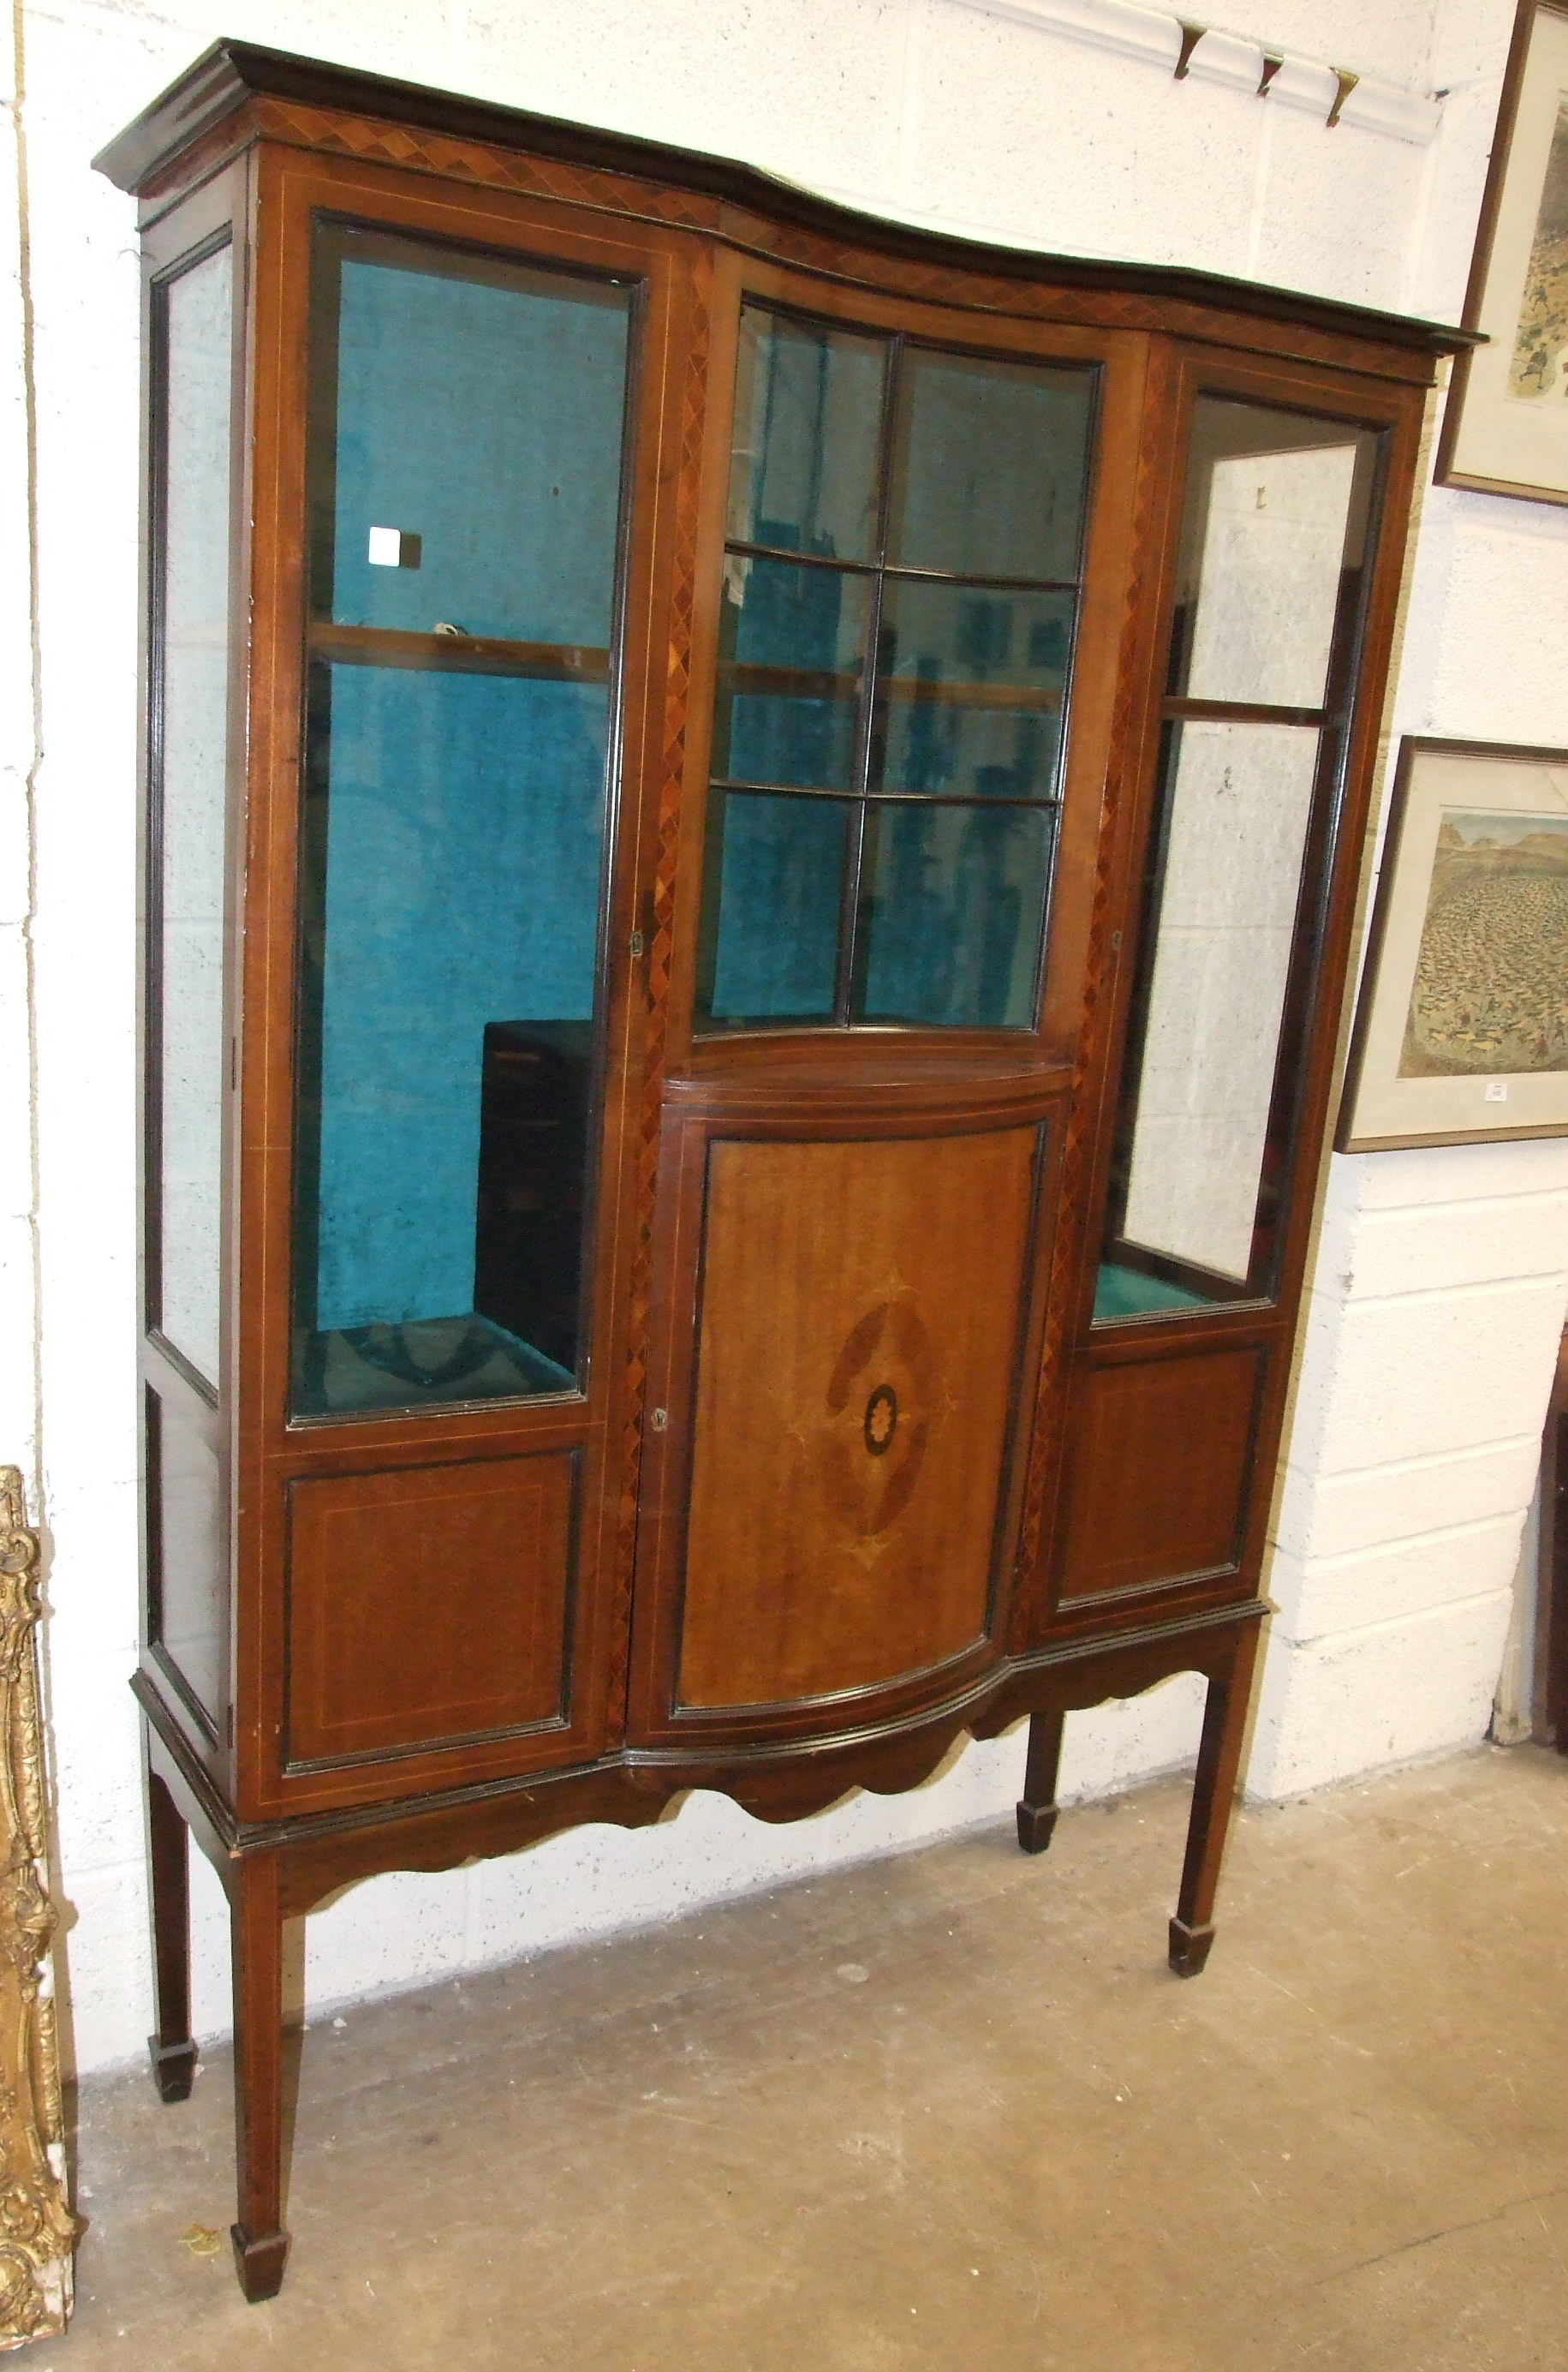 Lot 39 - An Edwardian inlaid mahogany glazed display cabinet on square legs and spade feet, 118cm wide, 173cm